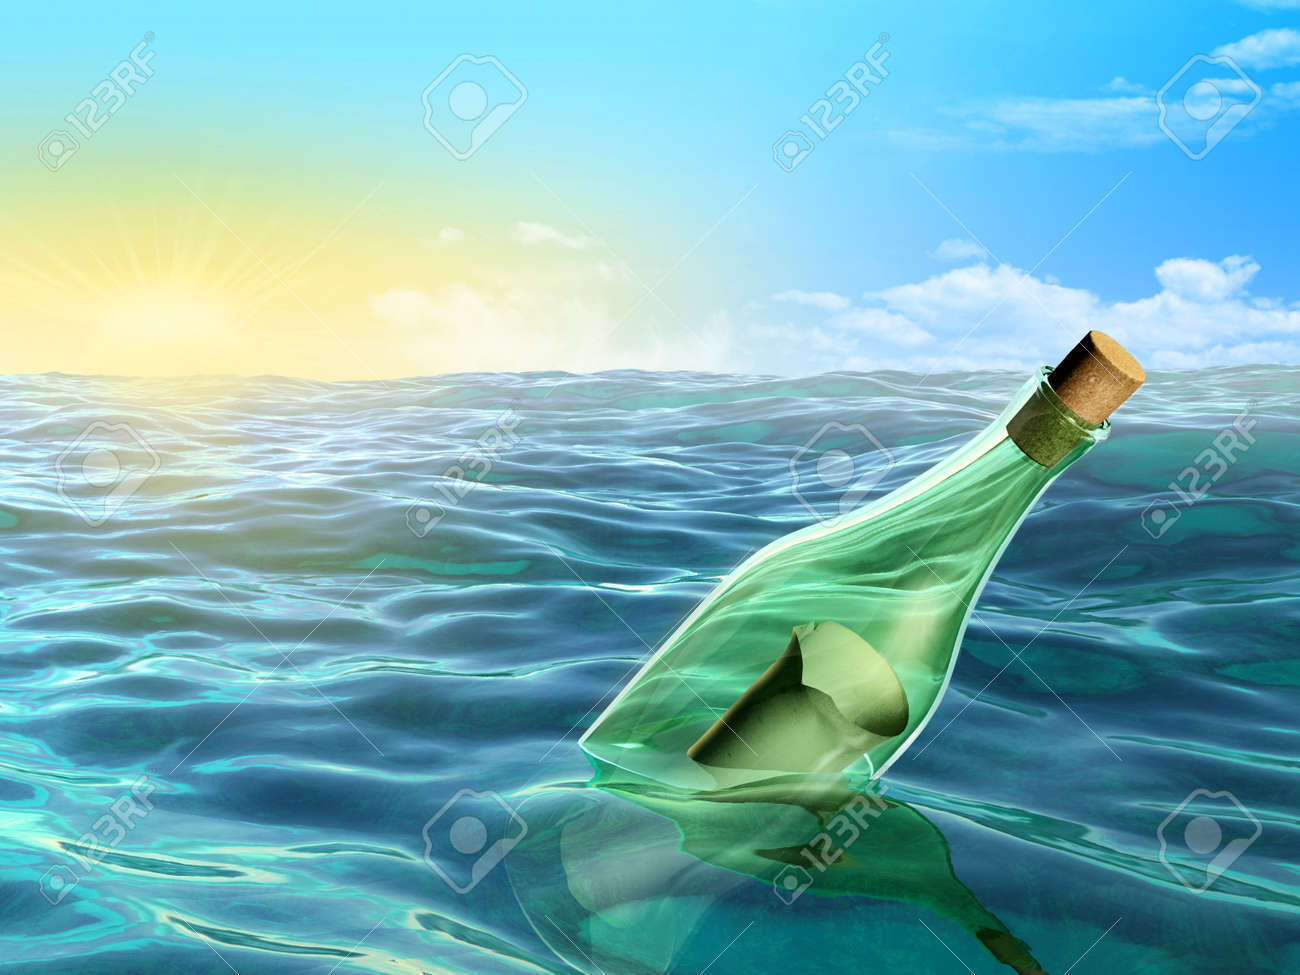 A glass bottle floating in the sea. Digital illustration. Stock Photo - 6818894